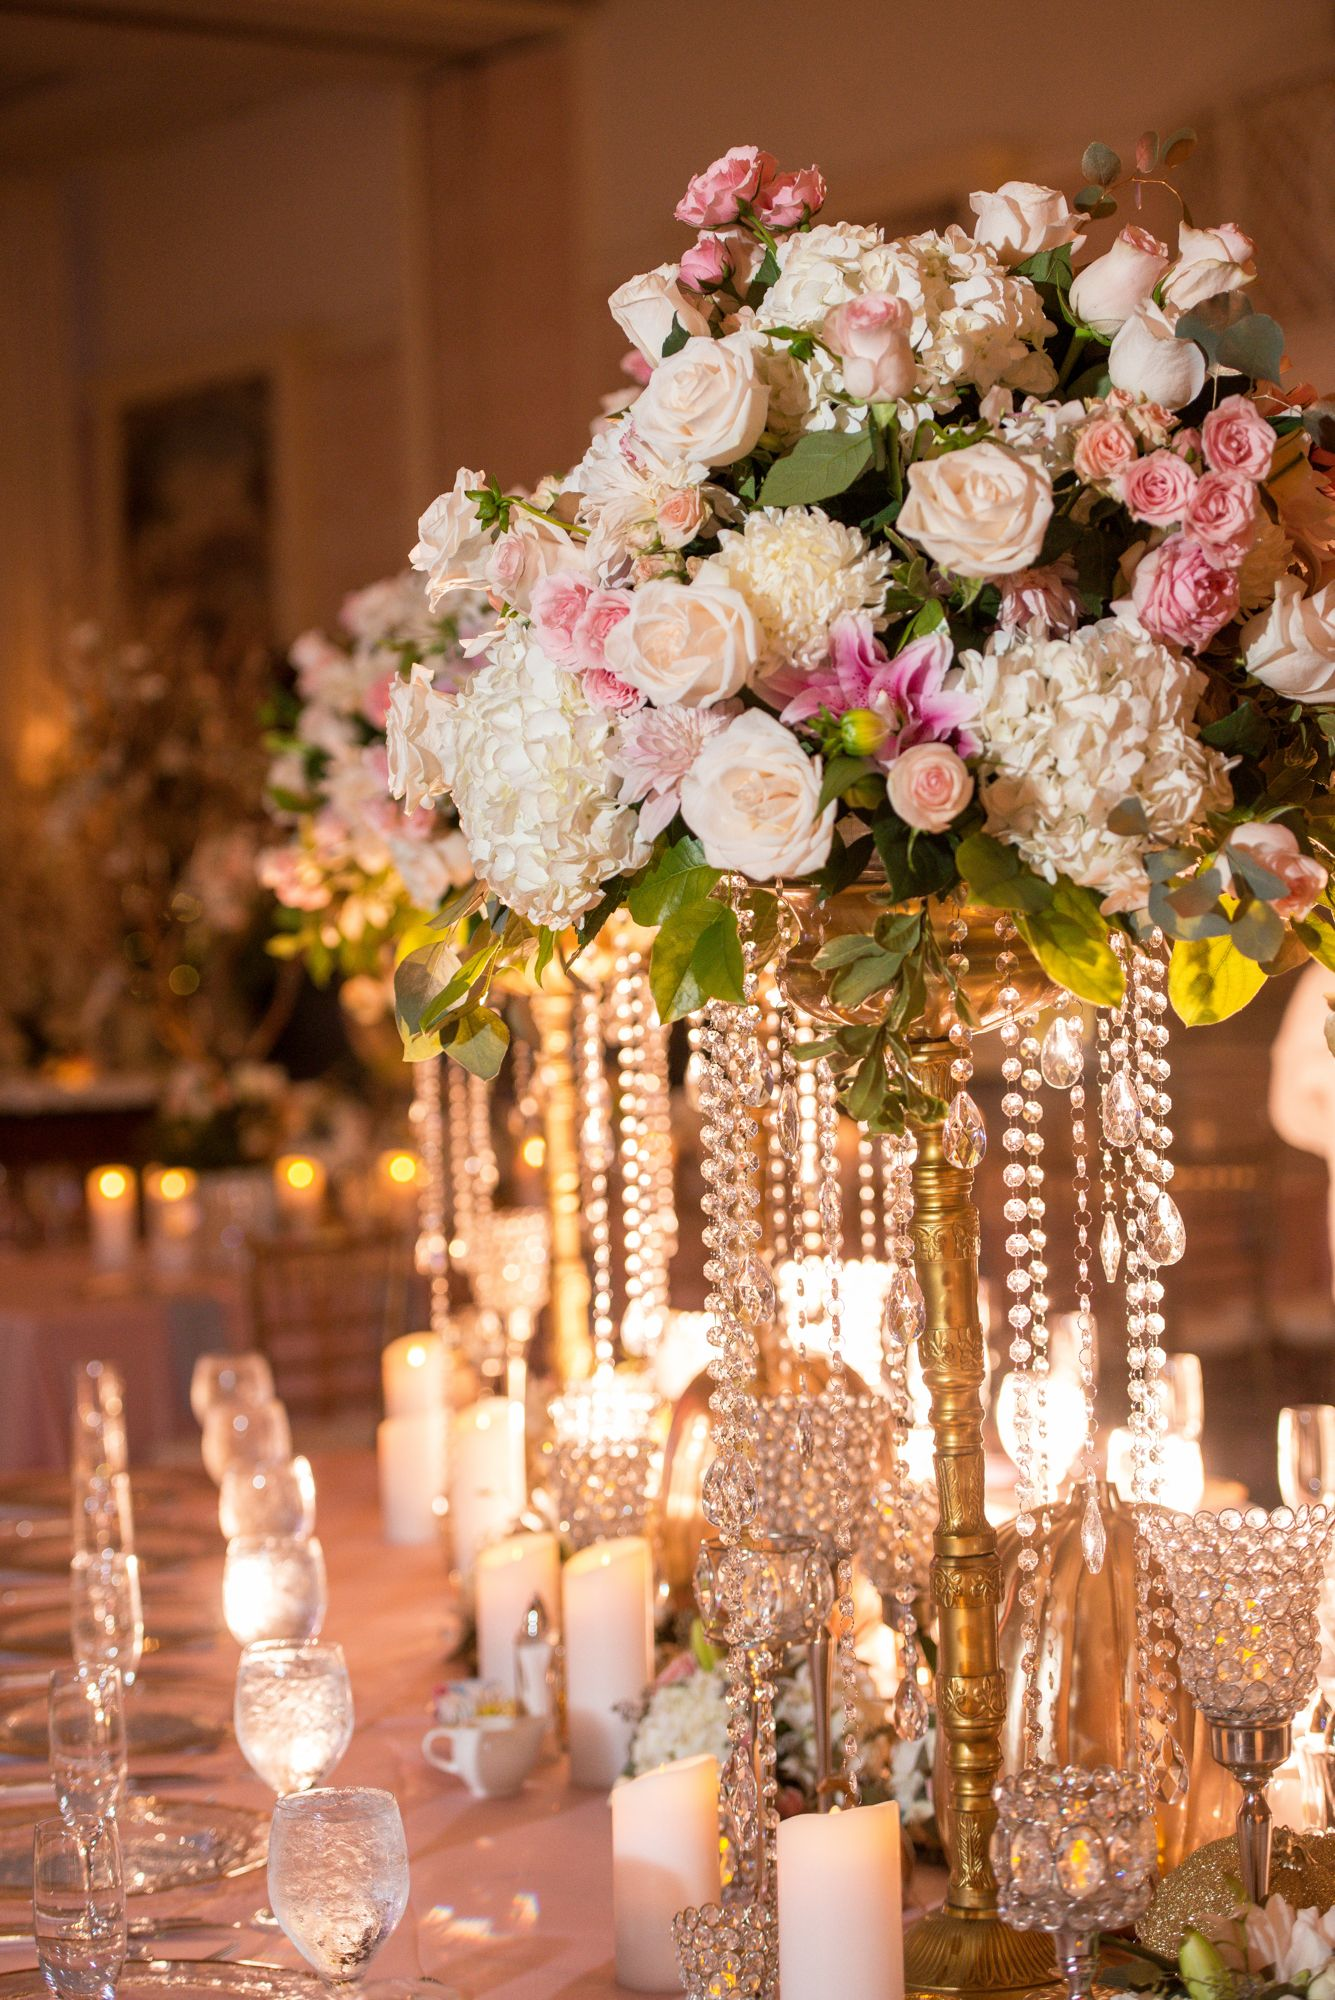 Cinderella Inspired Reception Table With Lush Flowers And Golden